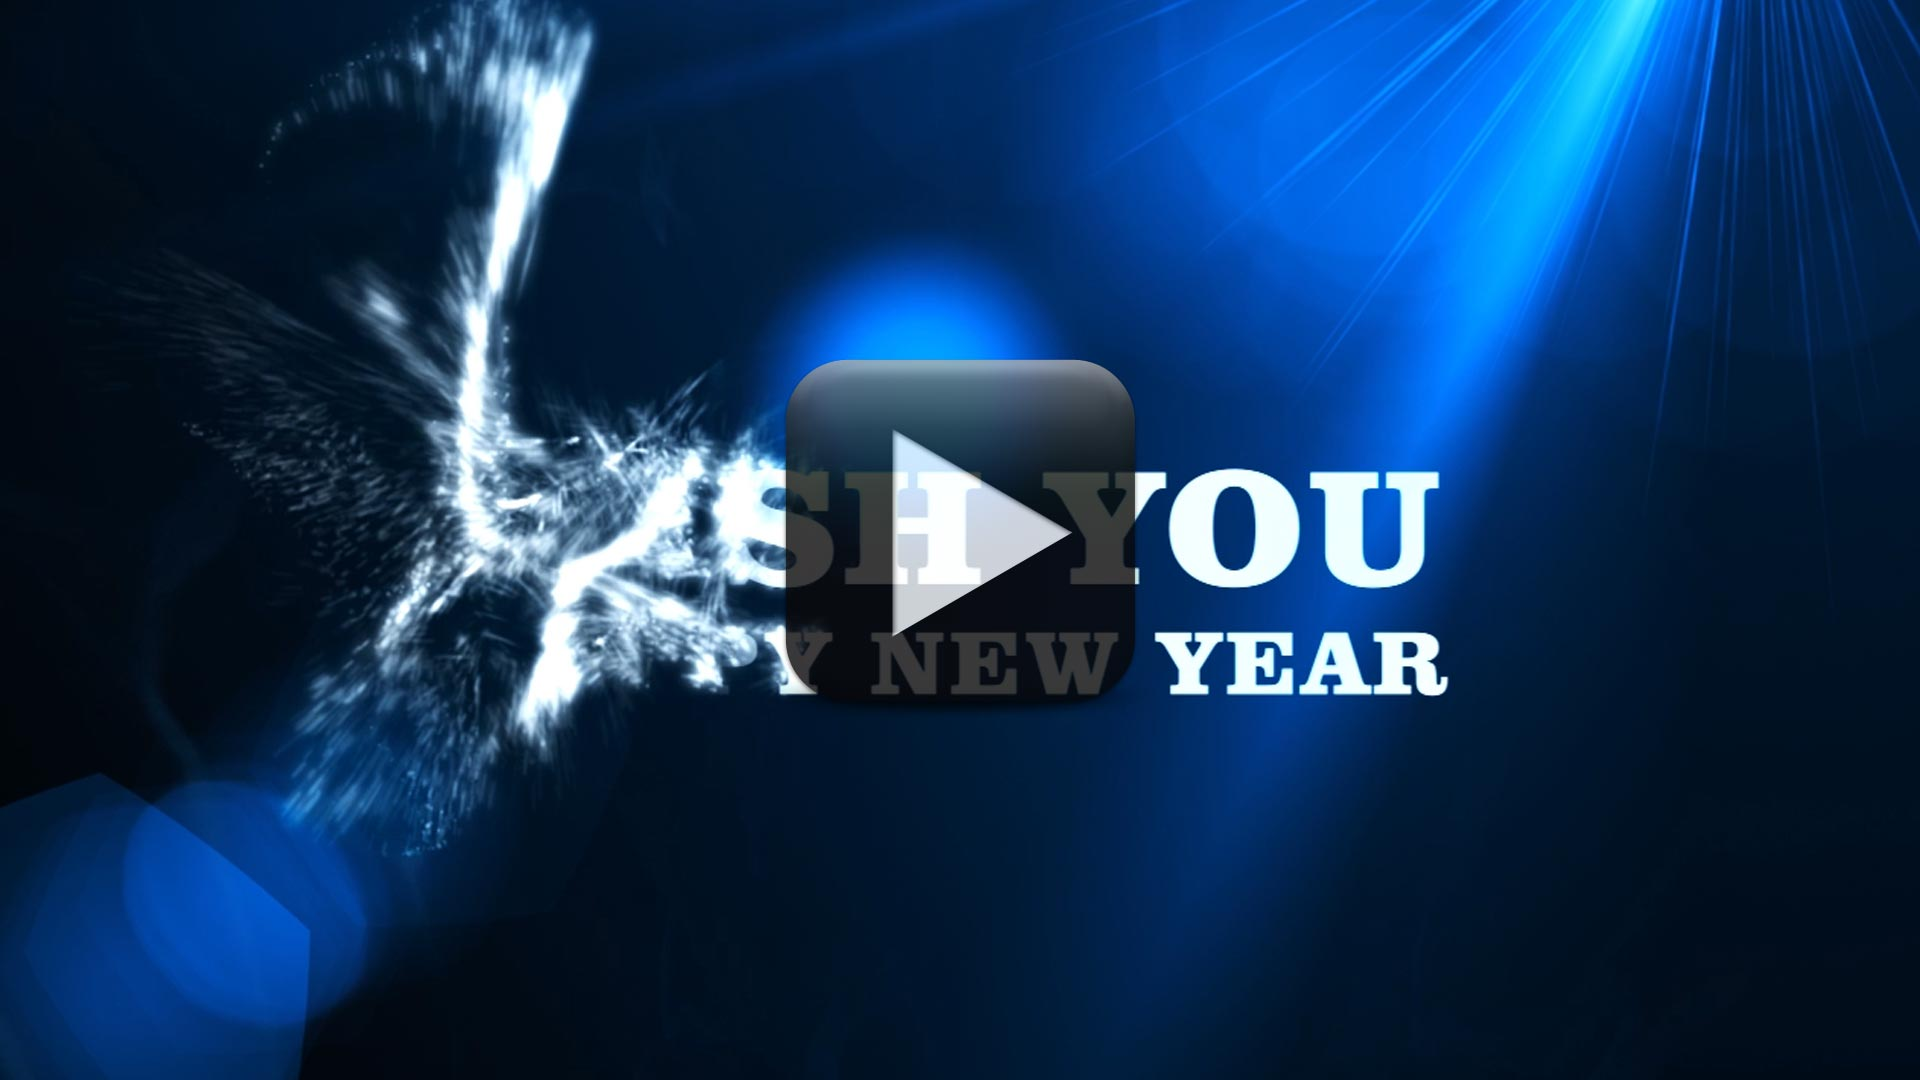 Happy new year 2018 new year wishes message whatsapp video happy new year 2018 new year wishes message whatsapp video greetings animation all design creative m4hsunfo Gallery